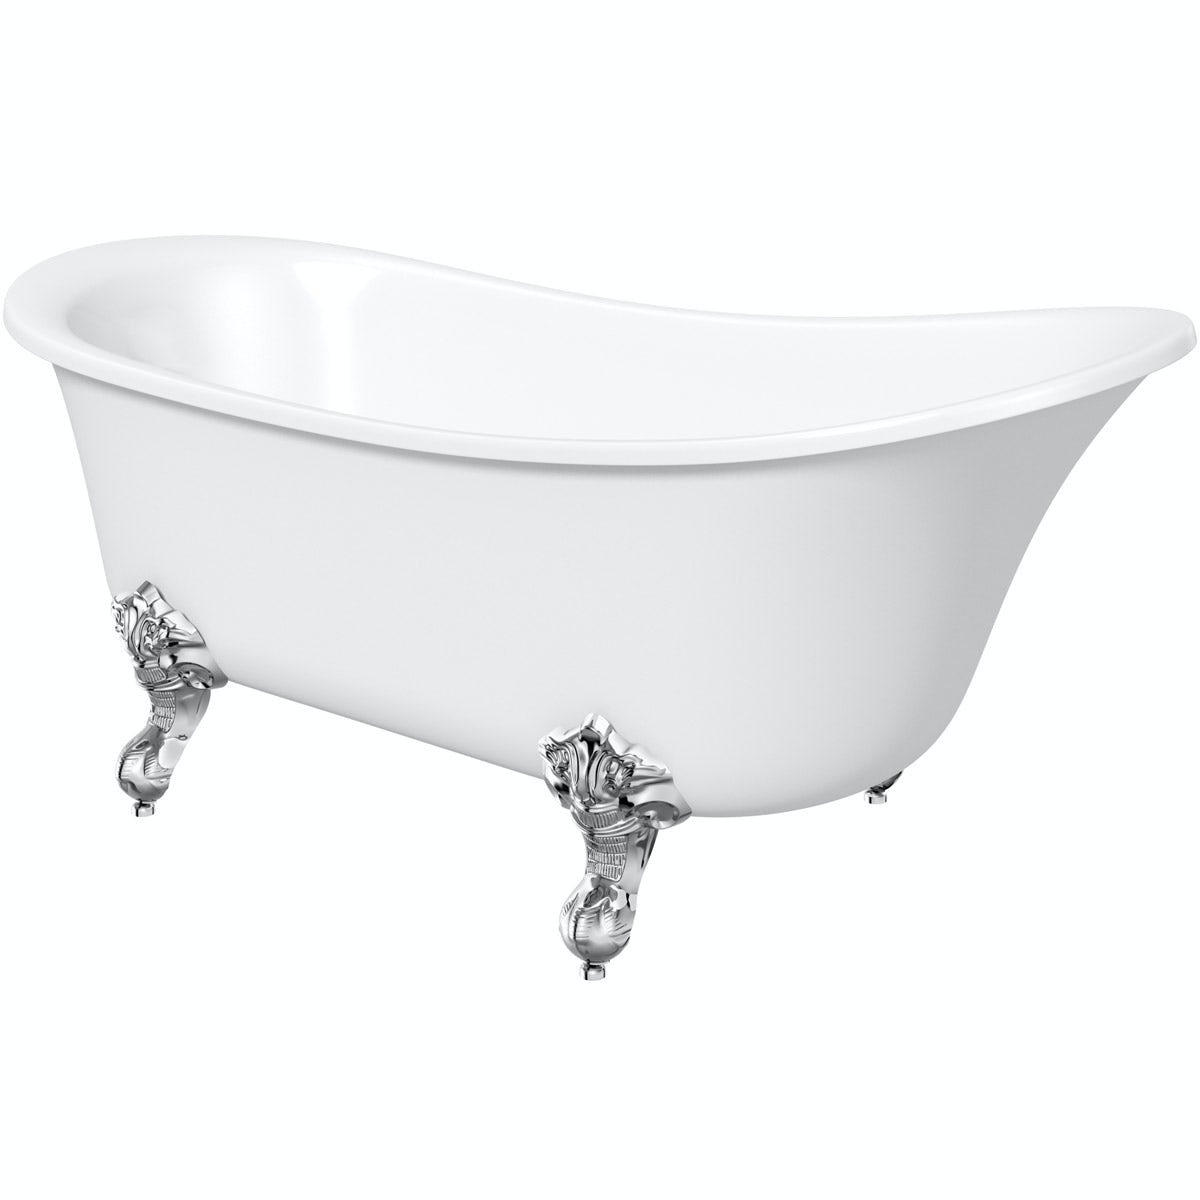 The Bath Co. Camberley freestanding slipper bath with ball feet 1520 x 770